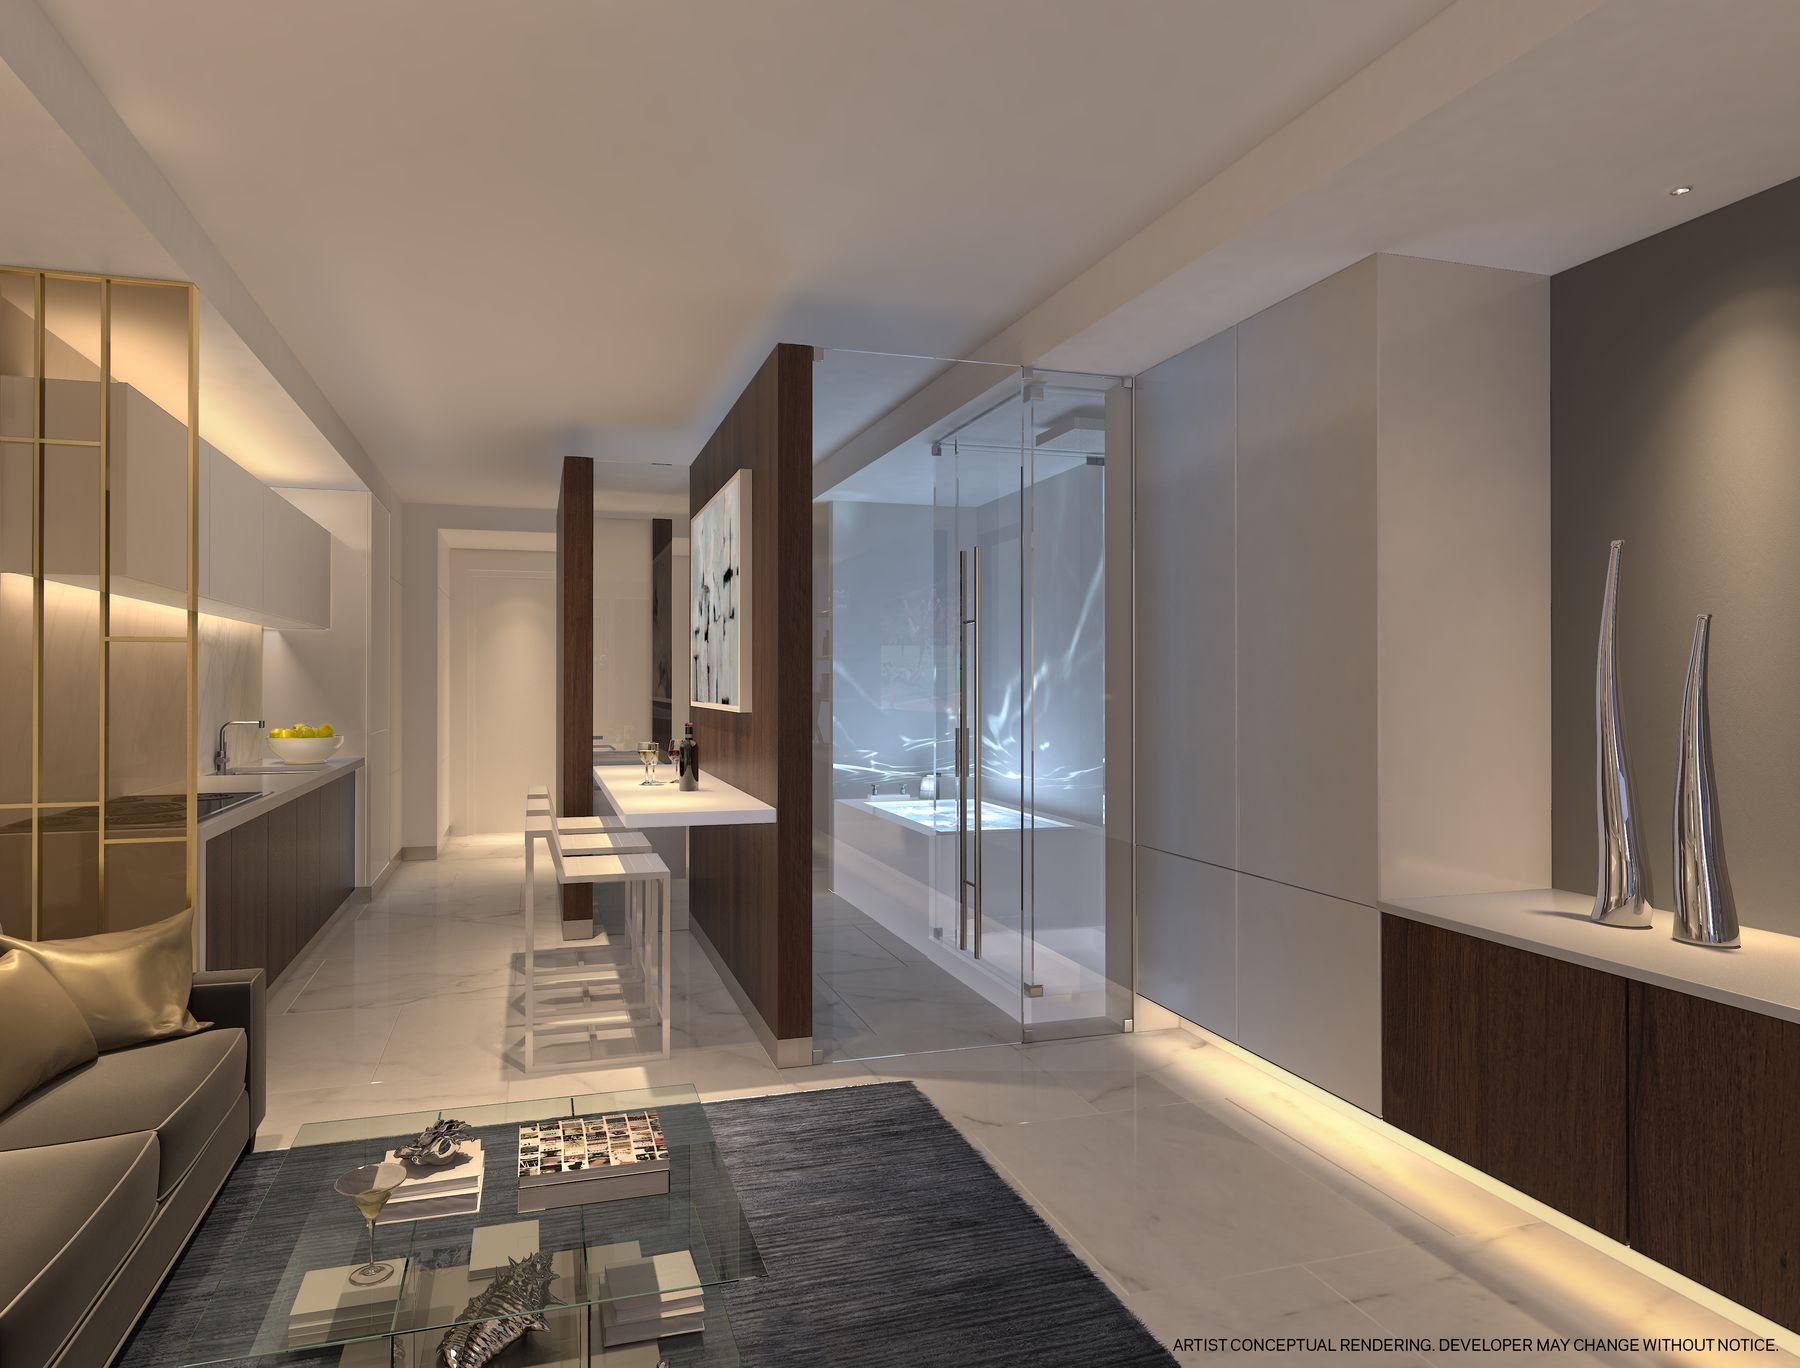 PARAMOUNT Miami Worldcenter Releases Renderings of Guest Suites